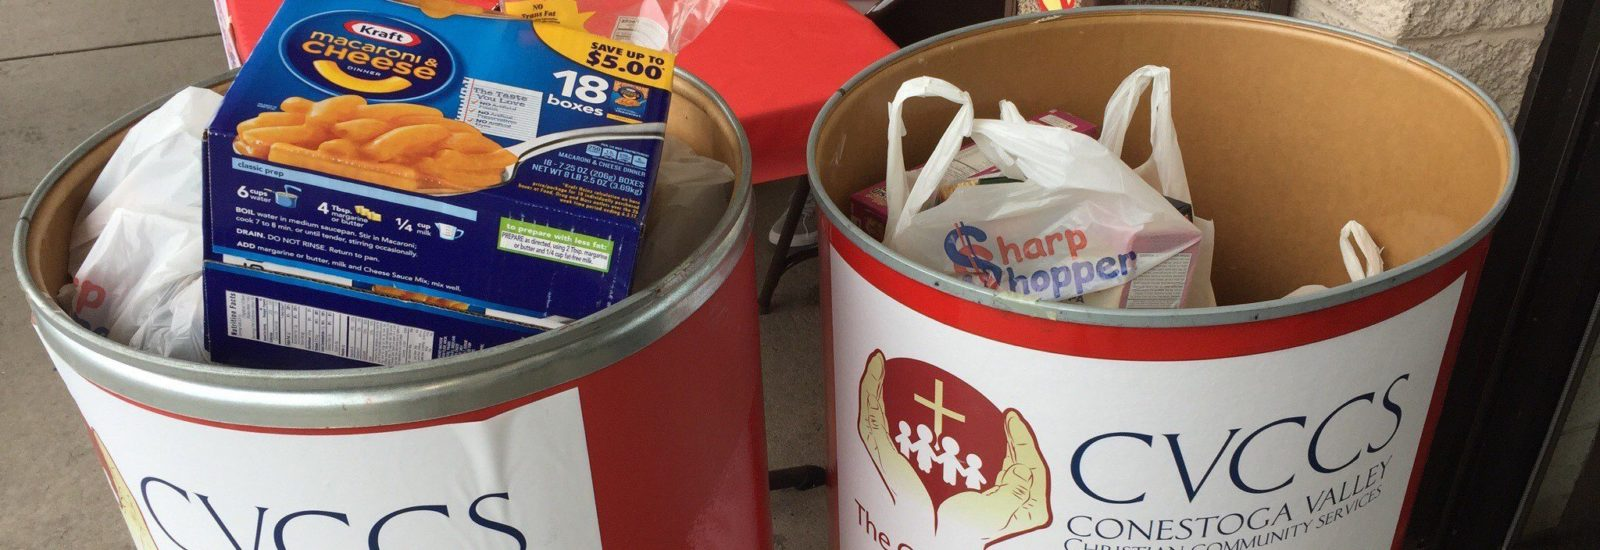 Food drive containers